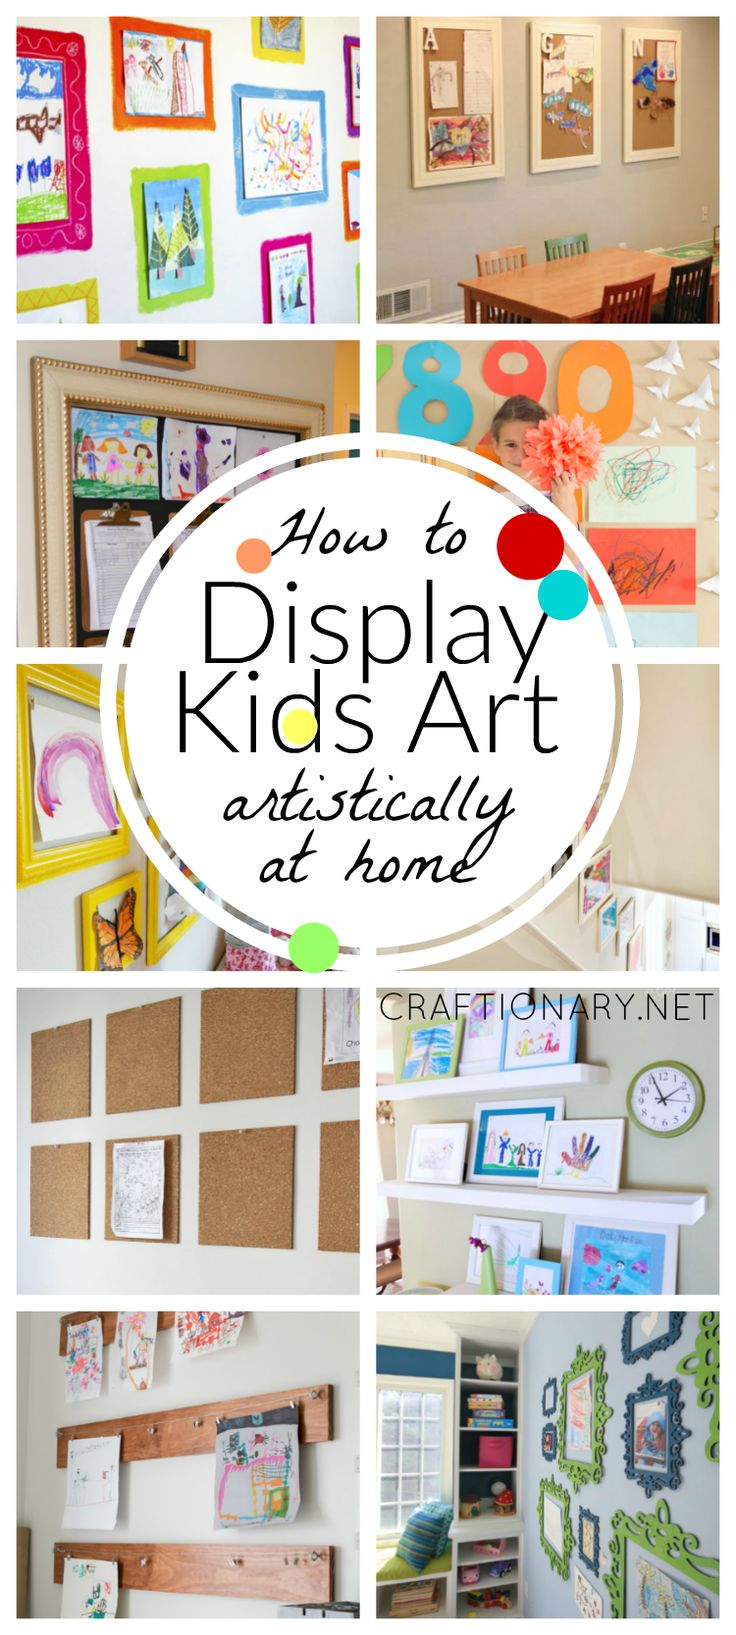 Display kids art at home artistically and create your kids' personal art gallery using these amazing ideas